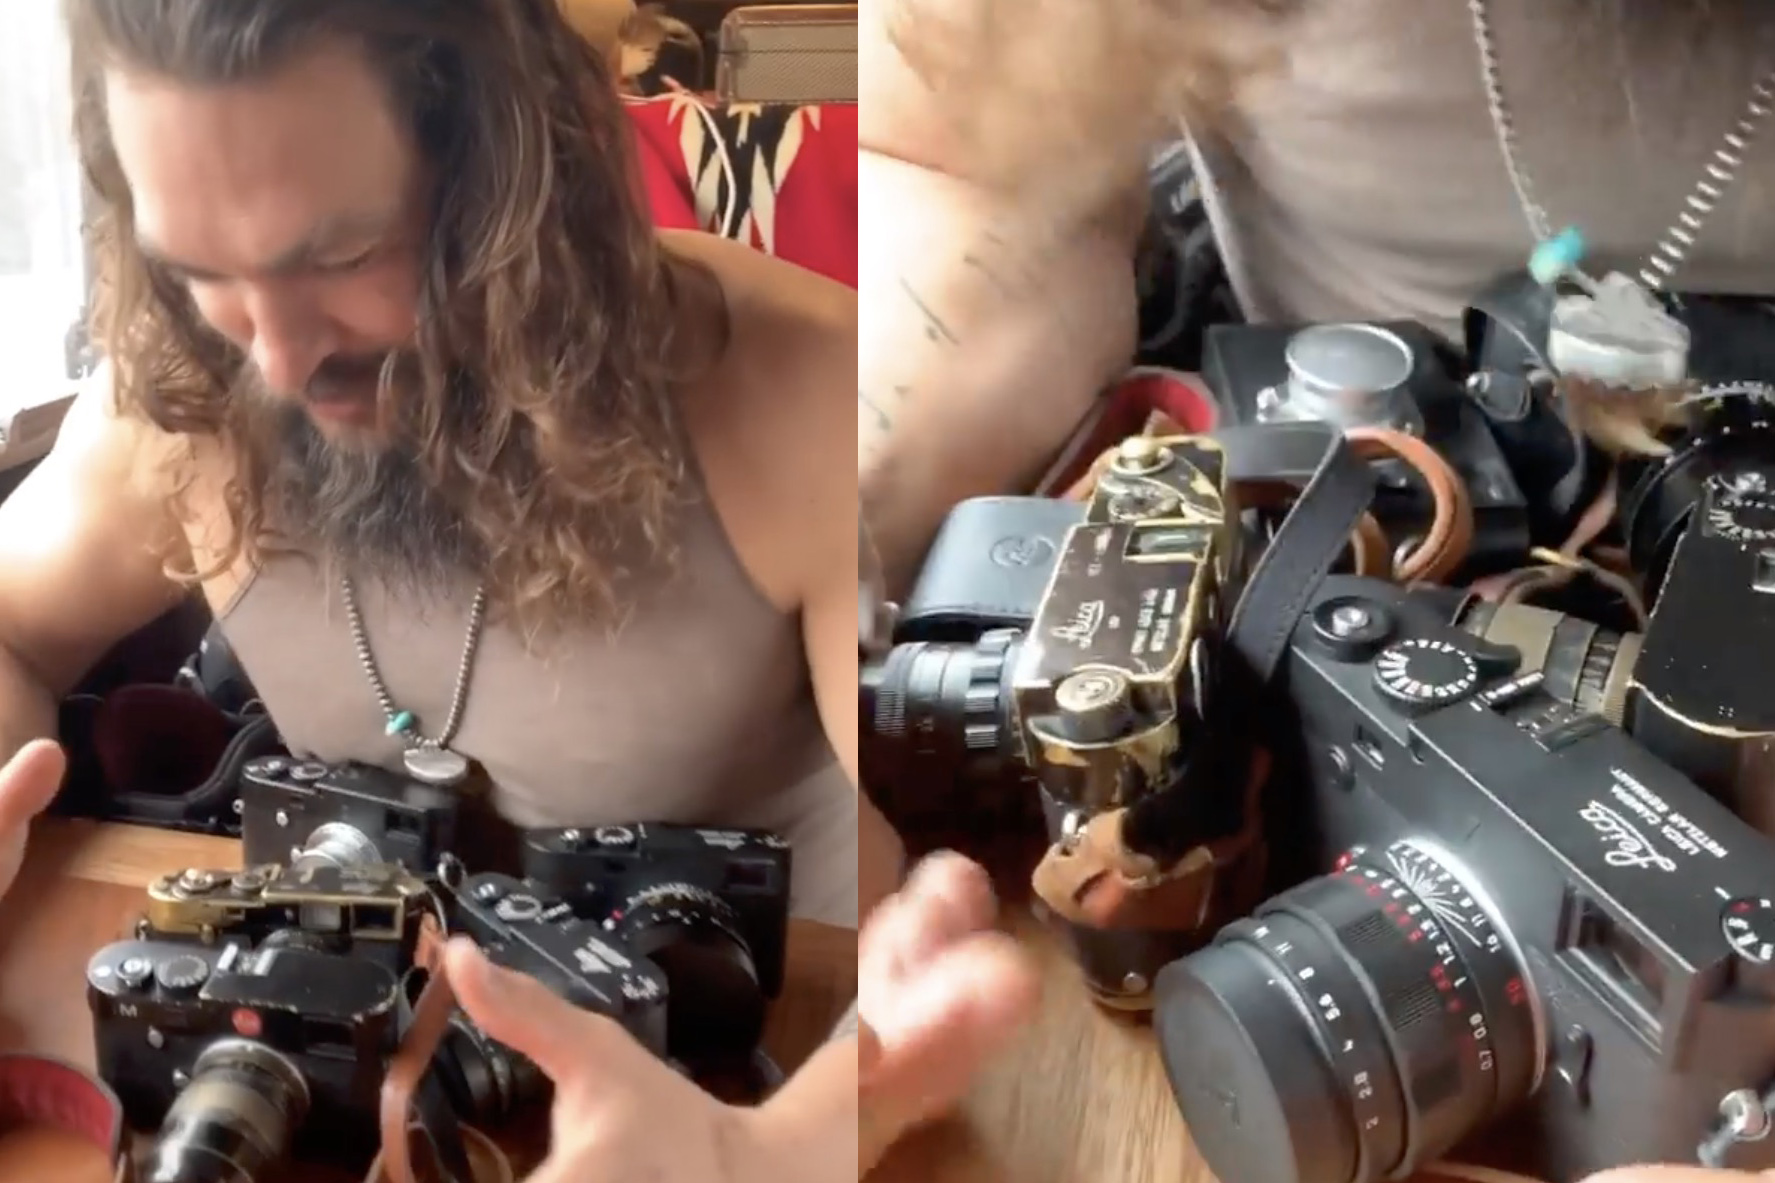 c453292da Jason Momoa, AKA Aquaman and Khal Drogo, is quite the Leica camera collector